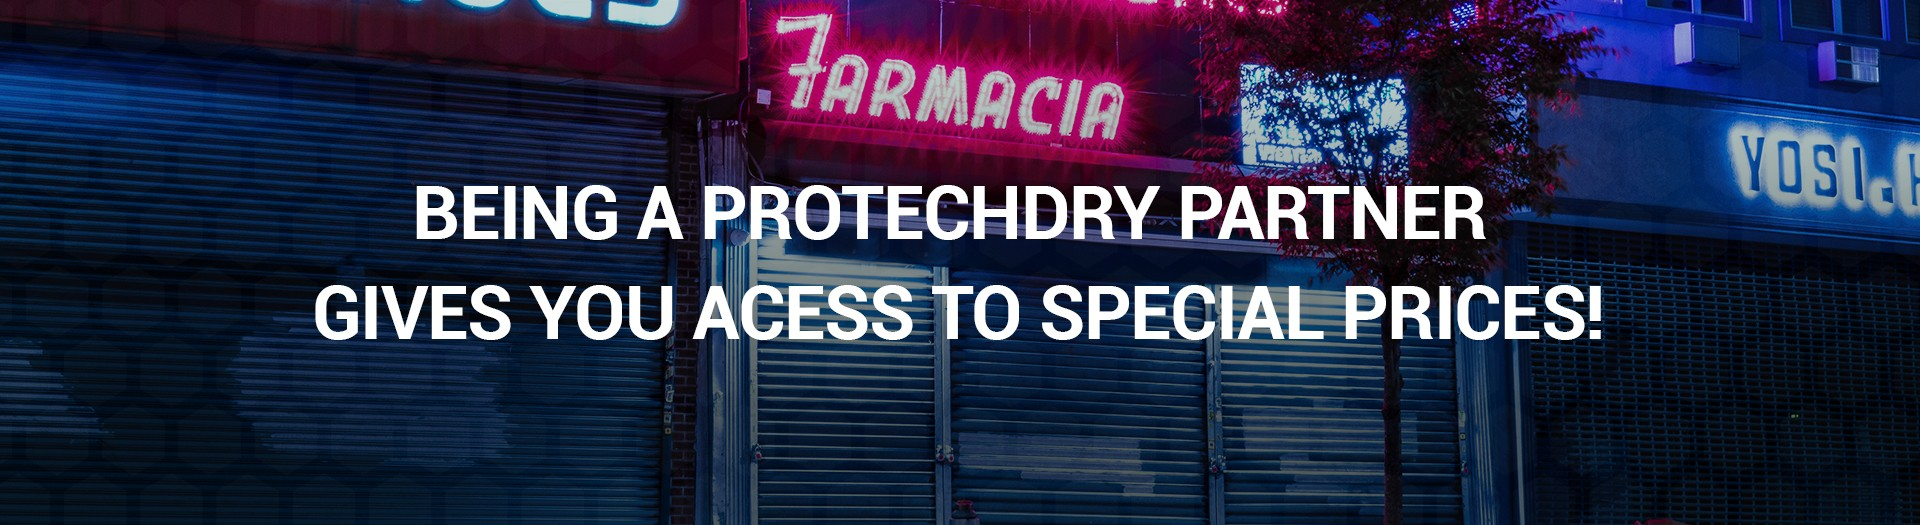 Be a ProtechDry partner and get access to special prices! | Pharmacies, Orthopedics, Medical shops |